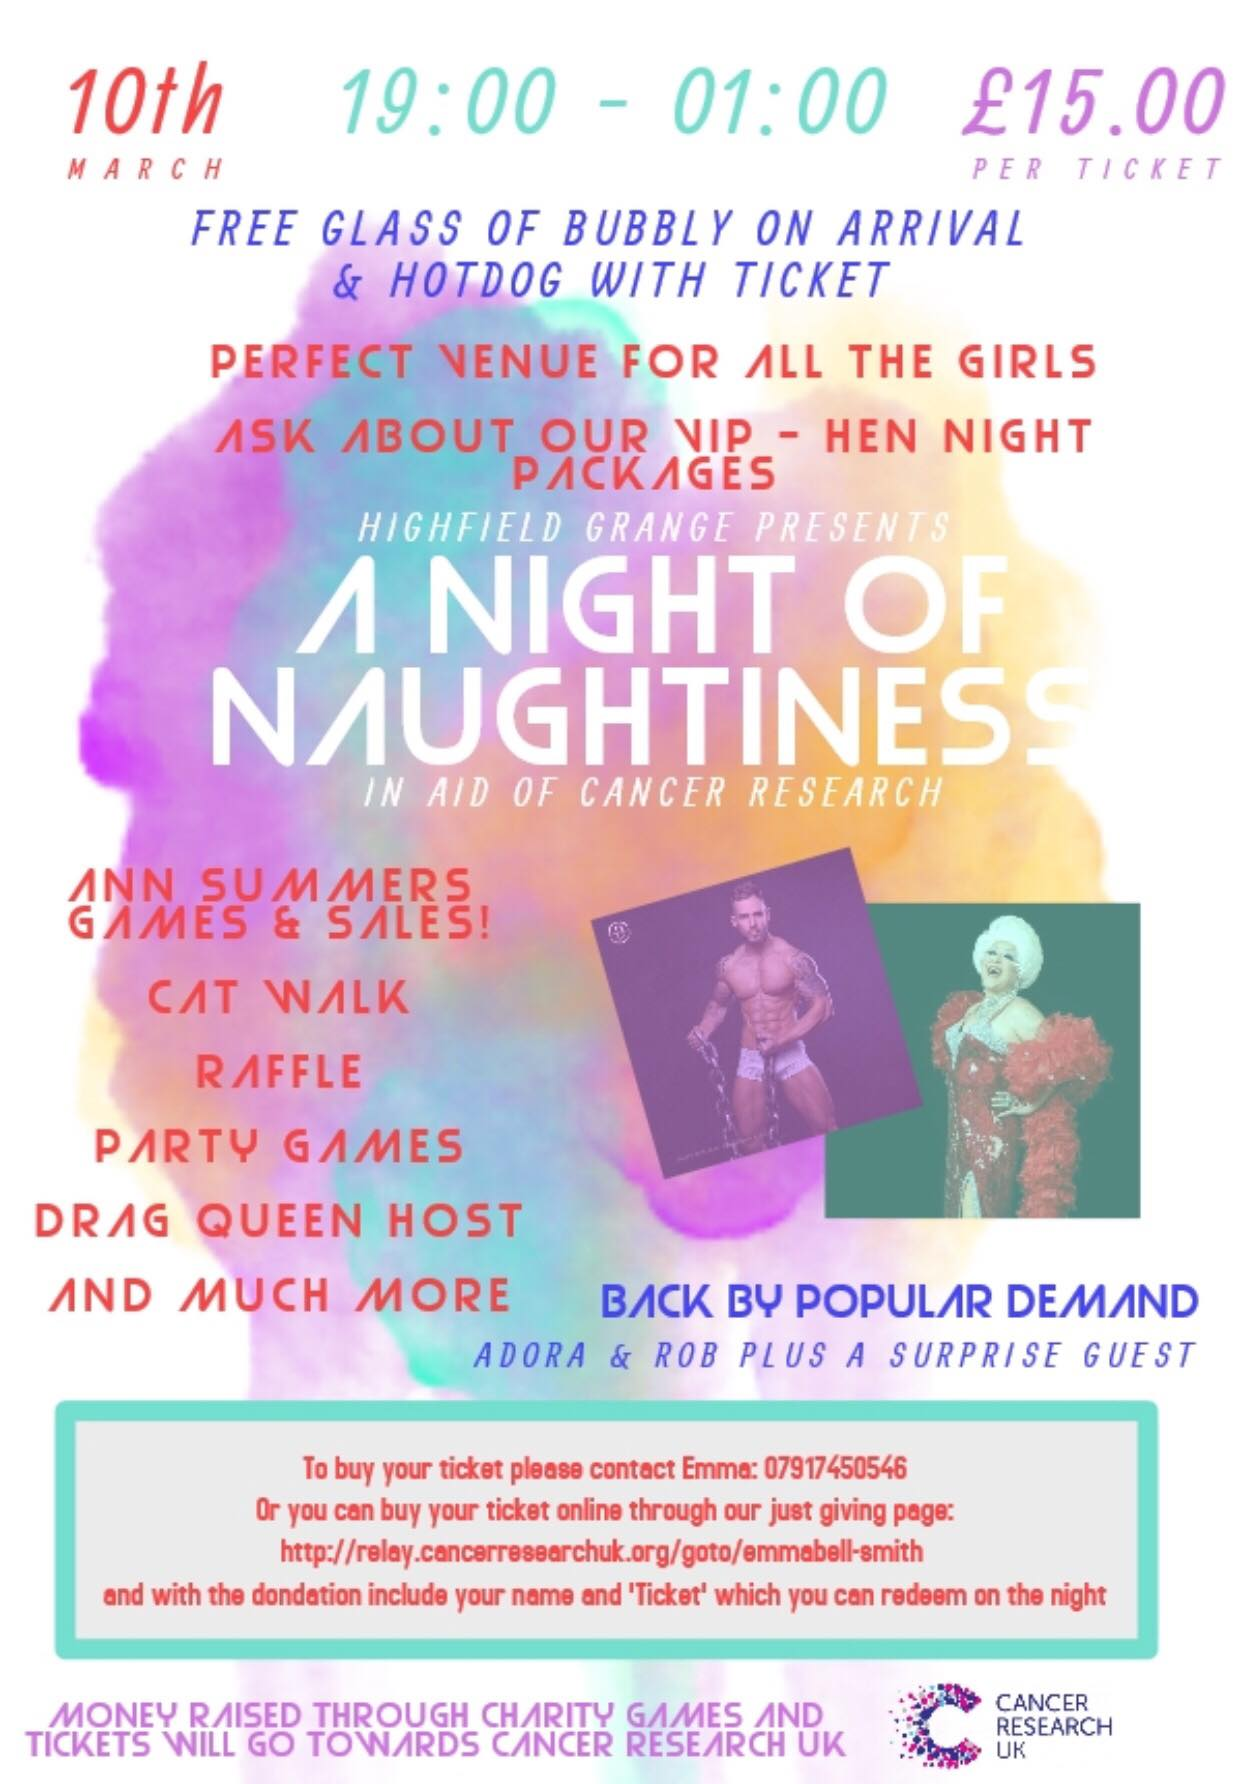 A night of Naughtniess